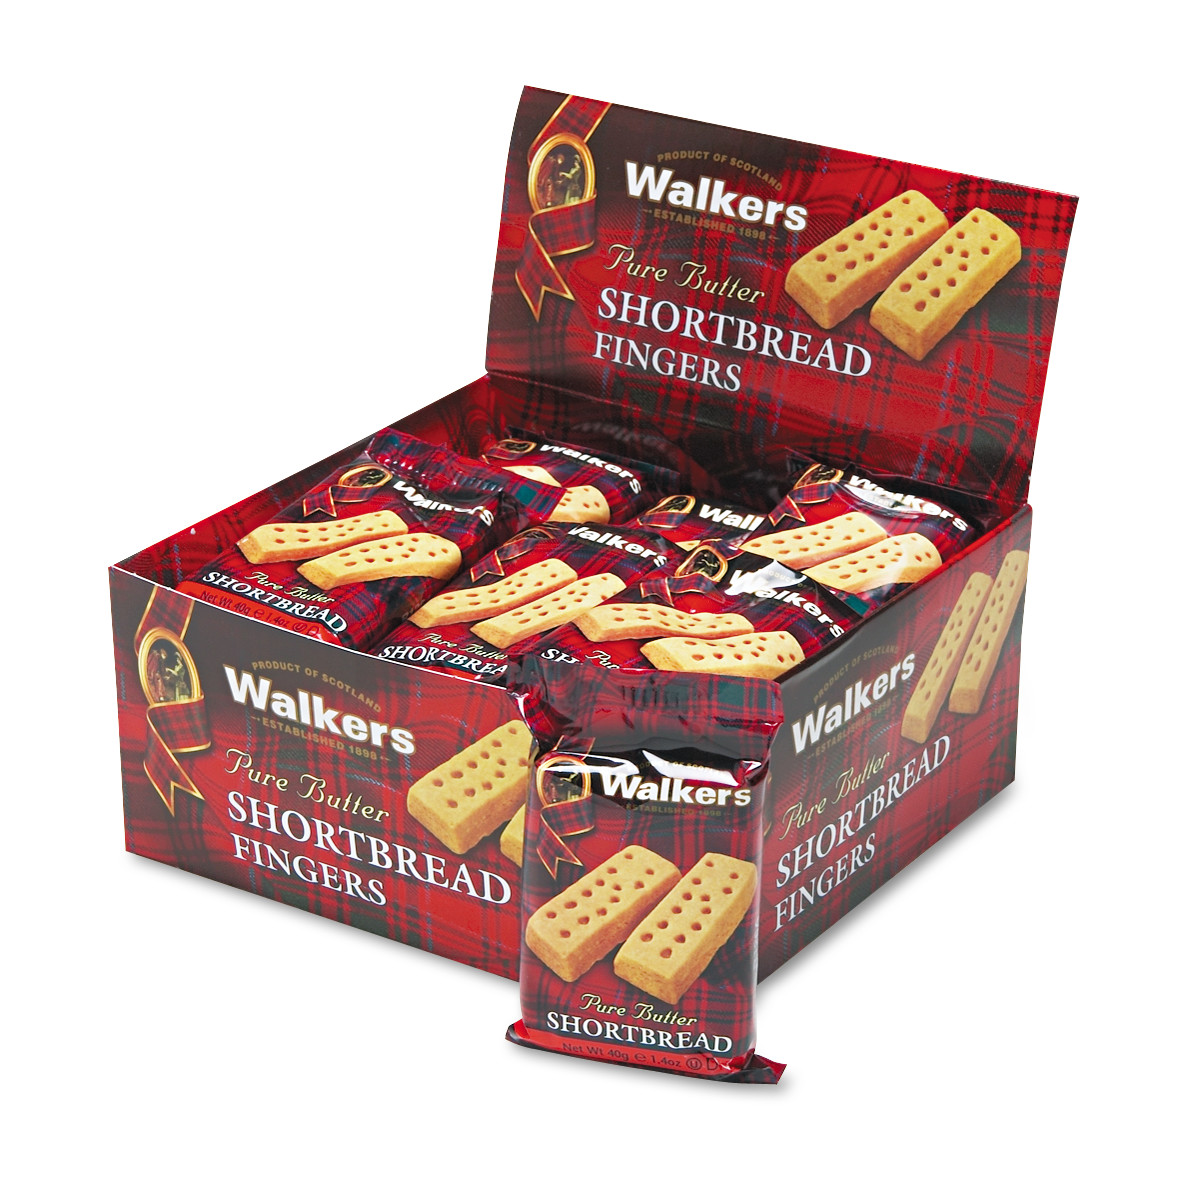 Walkers Shortbread Cookies, 2/Pack, 24 Packs/Box